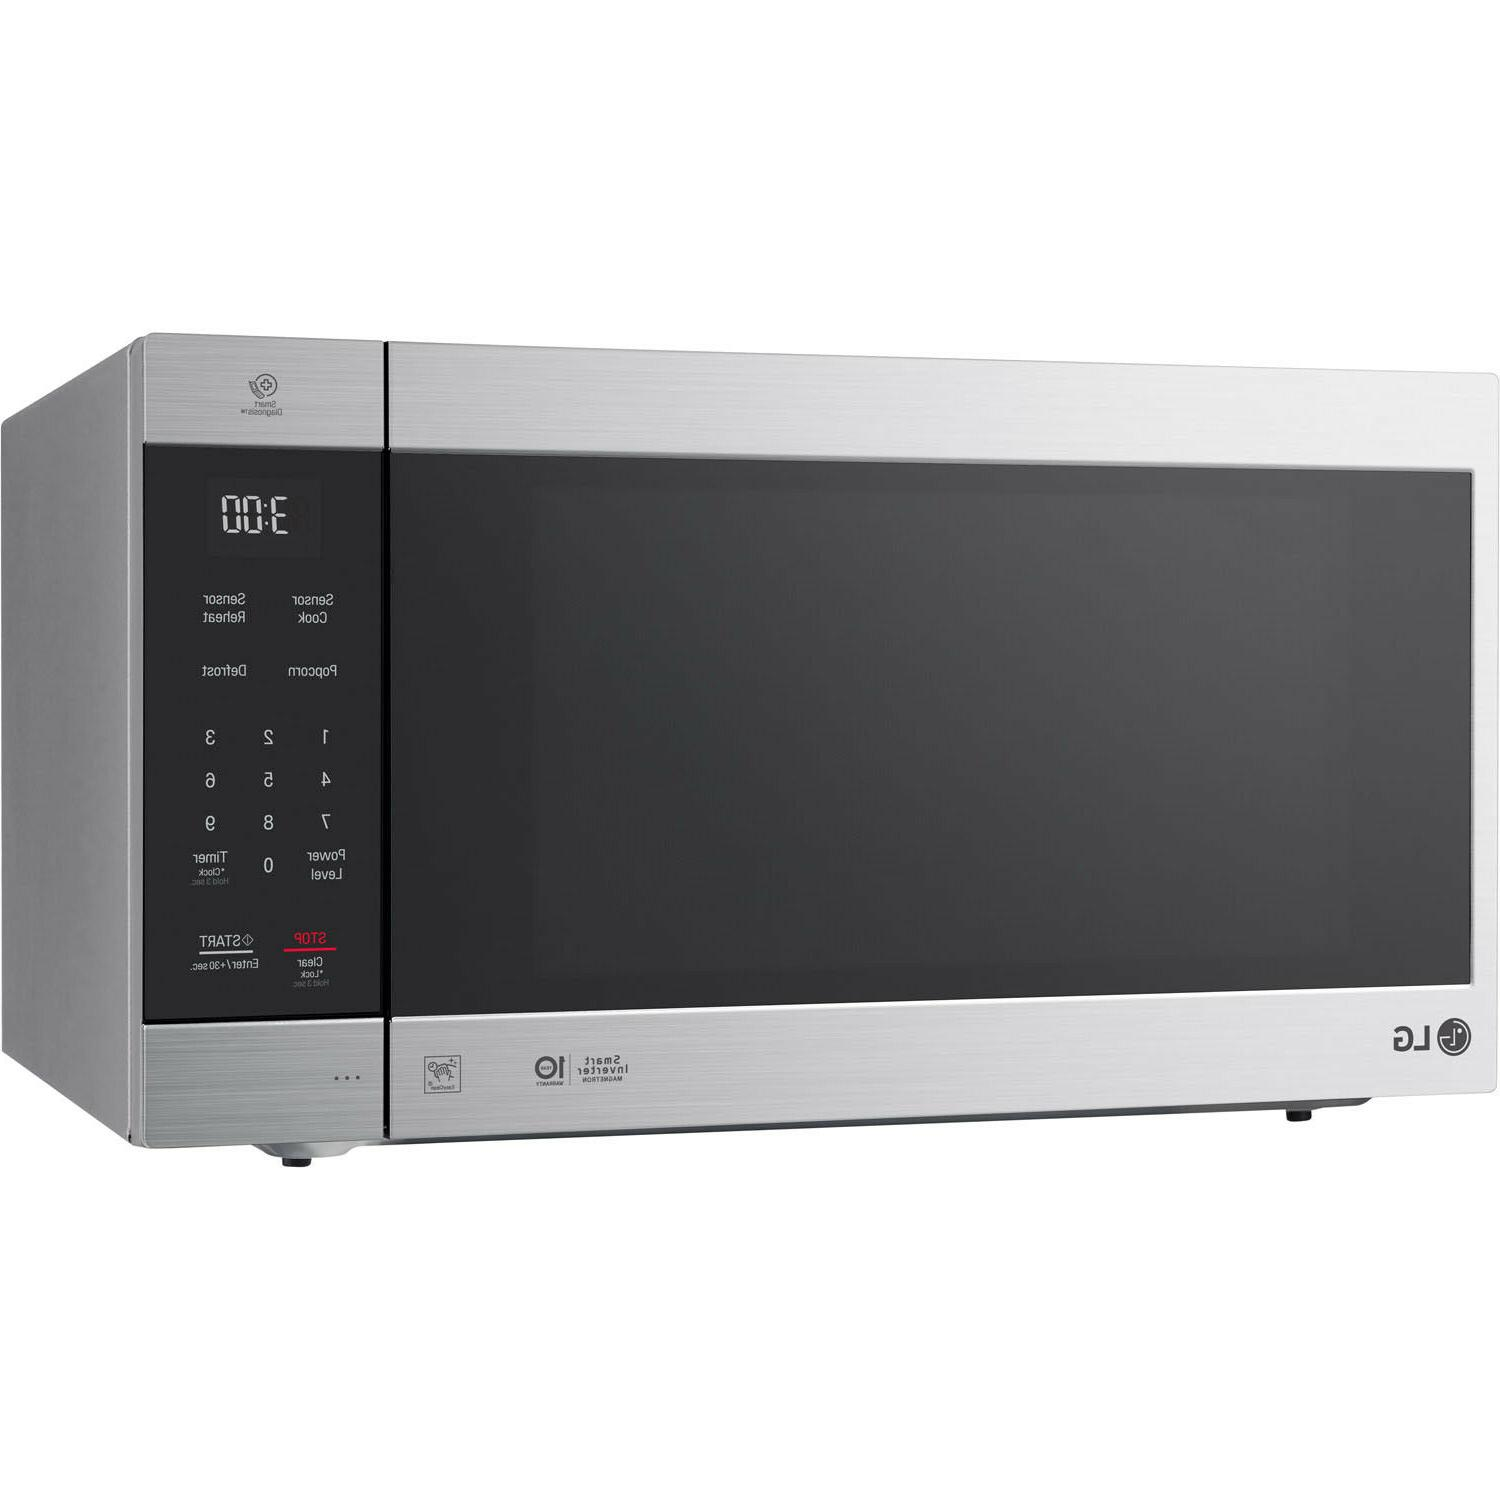 Ft Countertop Microwave-16 in Turntable-10